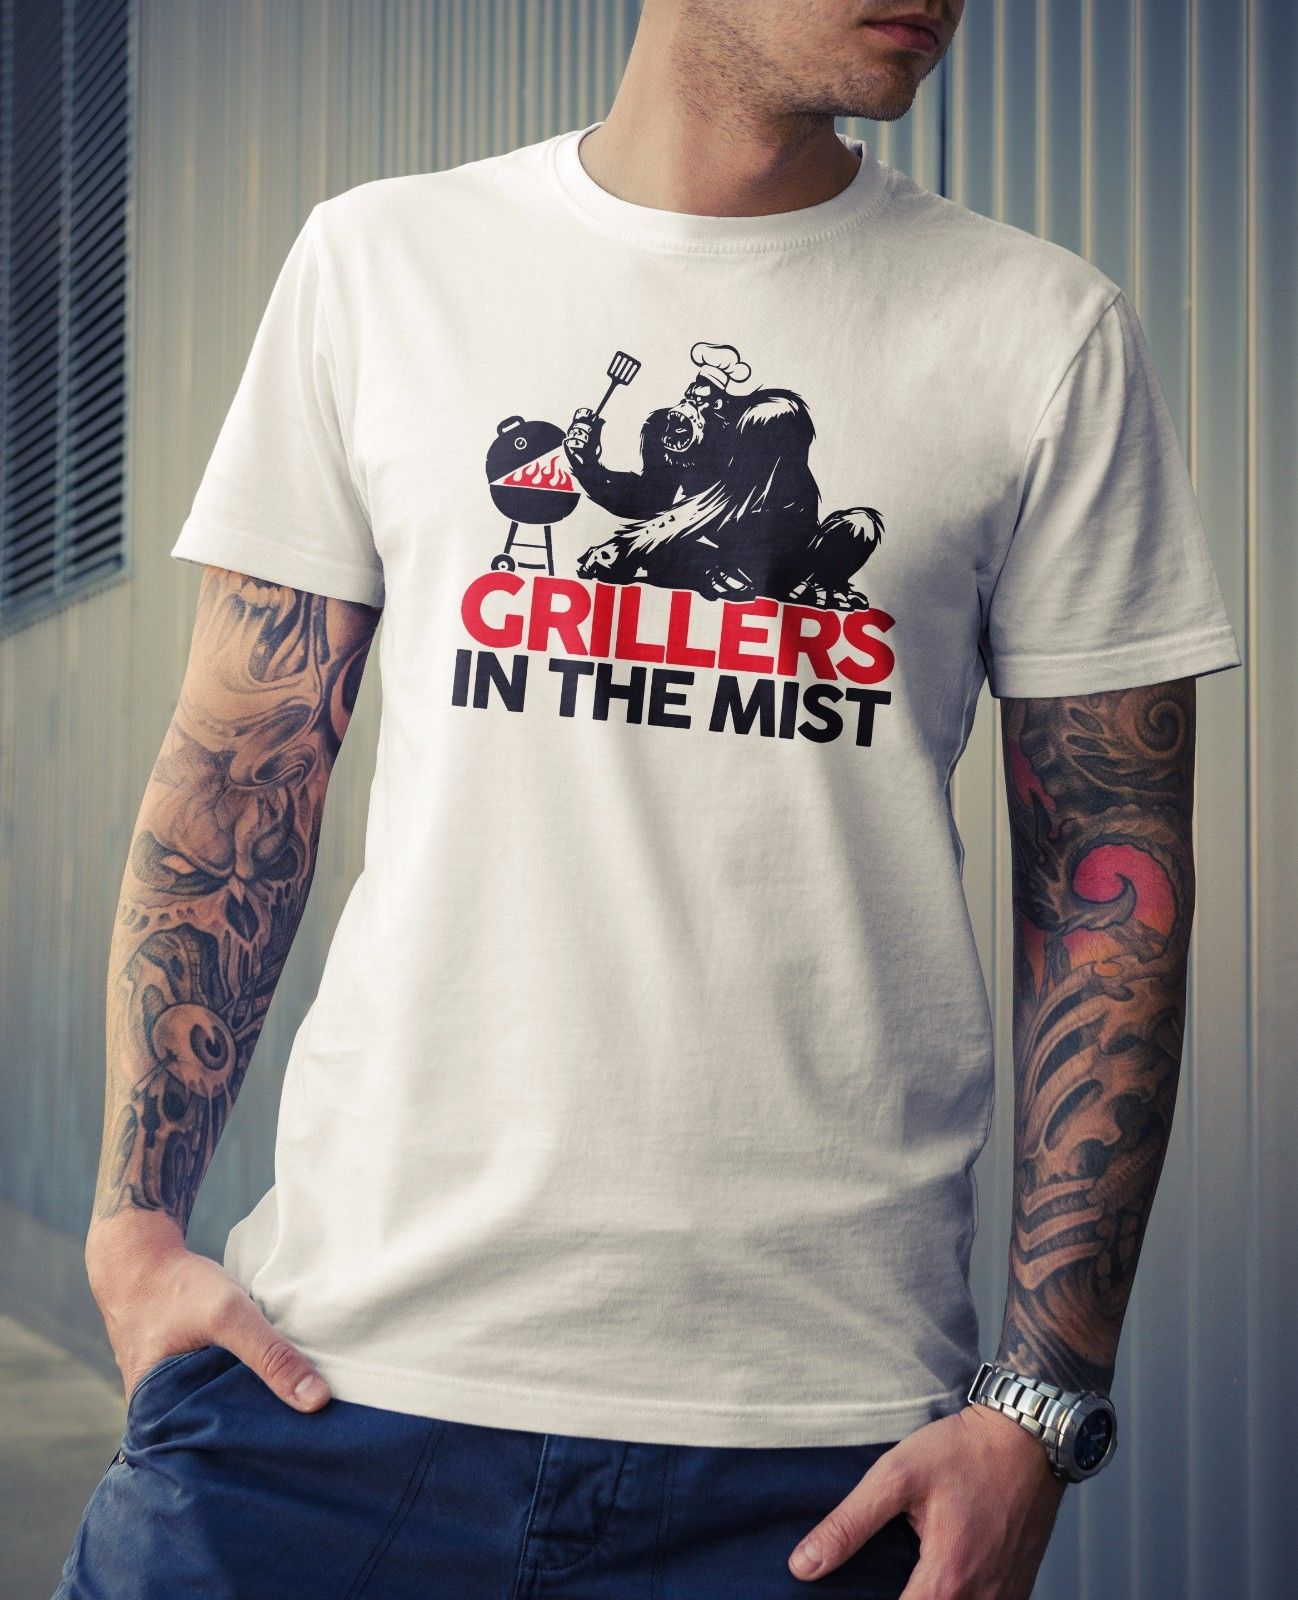 Grillers In The Mist T-Shirt - Joke Funny Novelty Movie Gorilla Gift Dad BBQ Fun Cool Casual pride t shirt men Unisex New tshirt